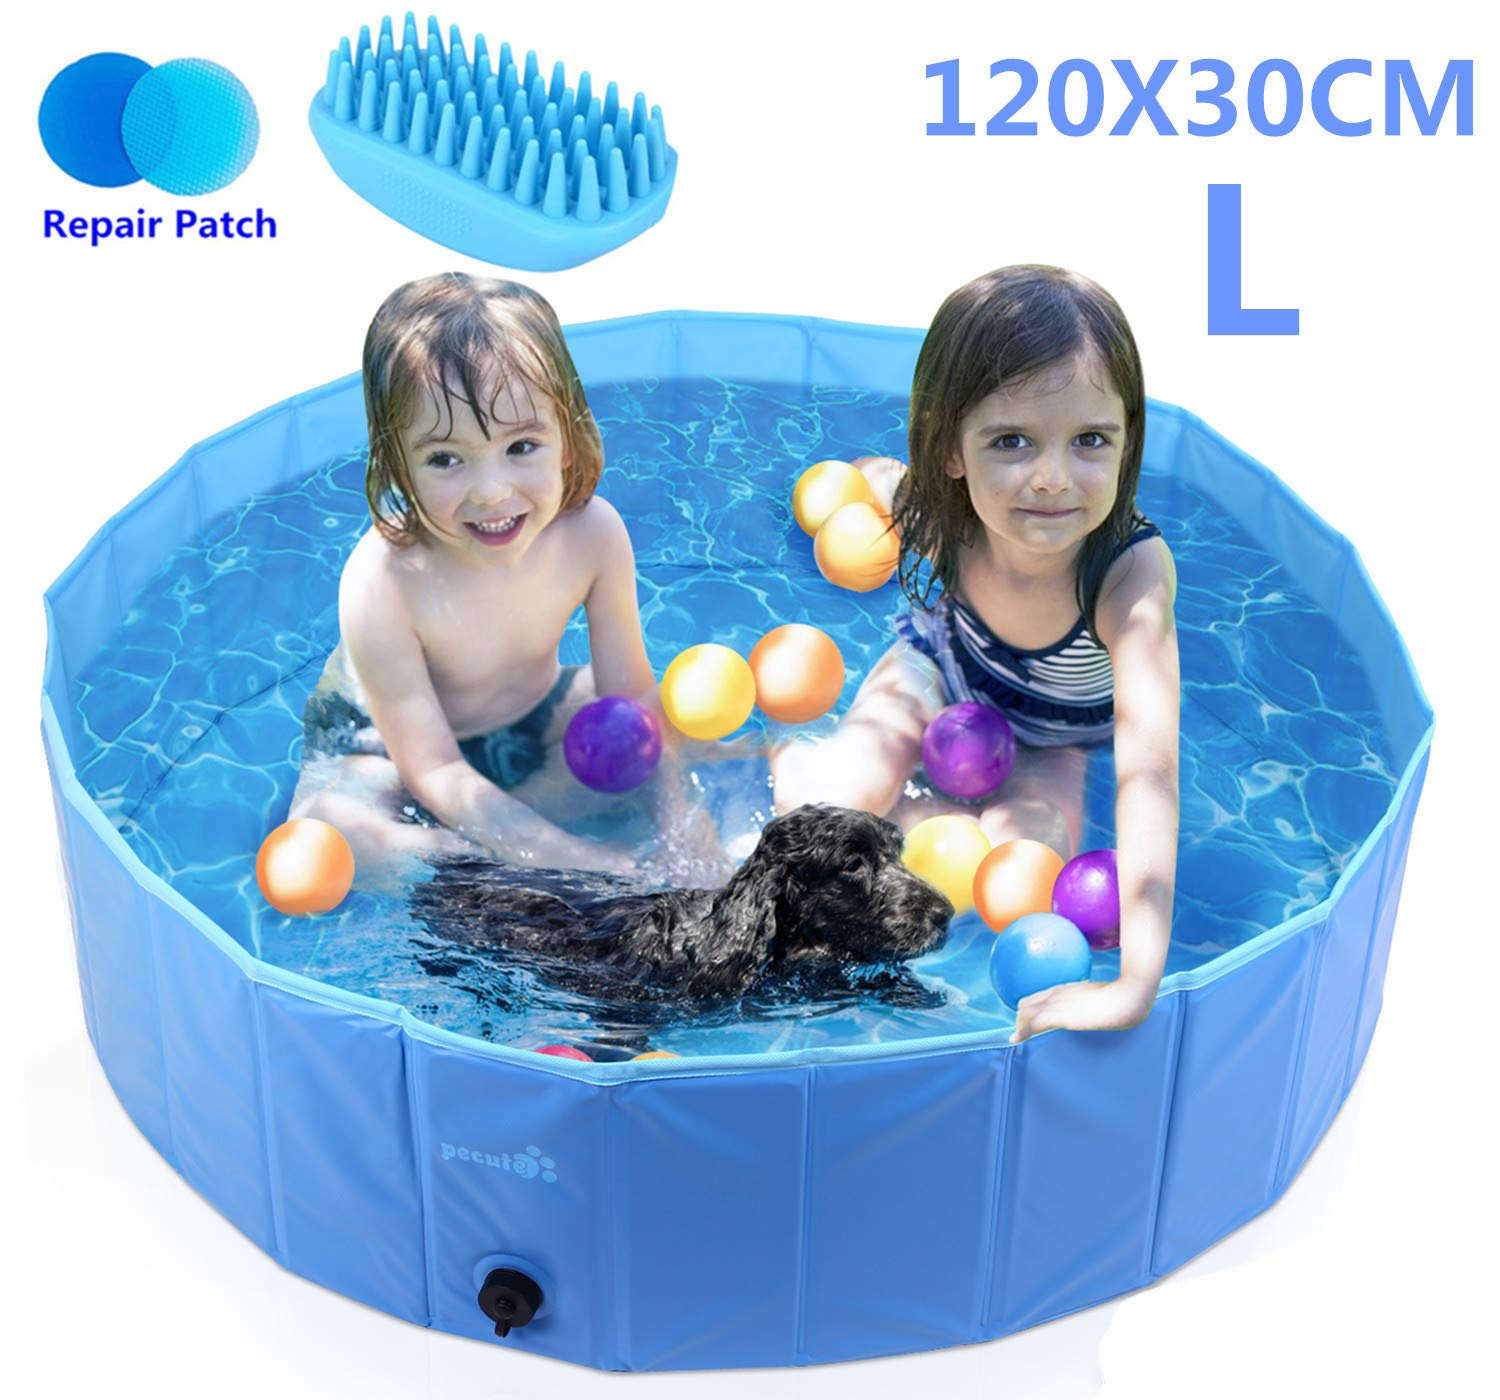 Pecute Dog Pool PVC Outdoor Pool Bathing Tub Portable Pet Playing Pool for Dogs Cats and Kids -(L,Φ47 × H12 Inches) by Pecute